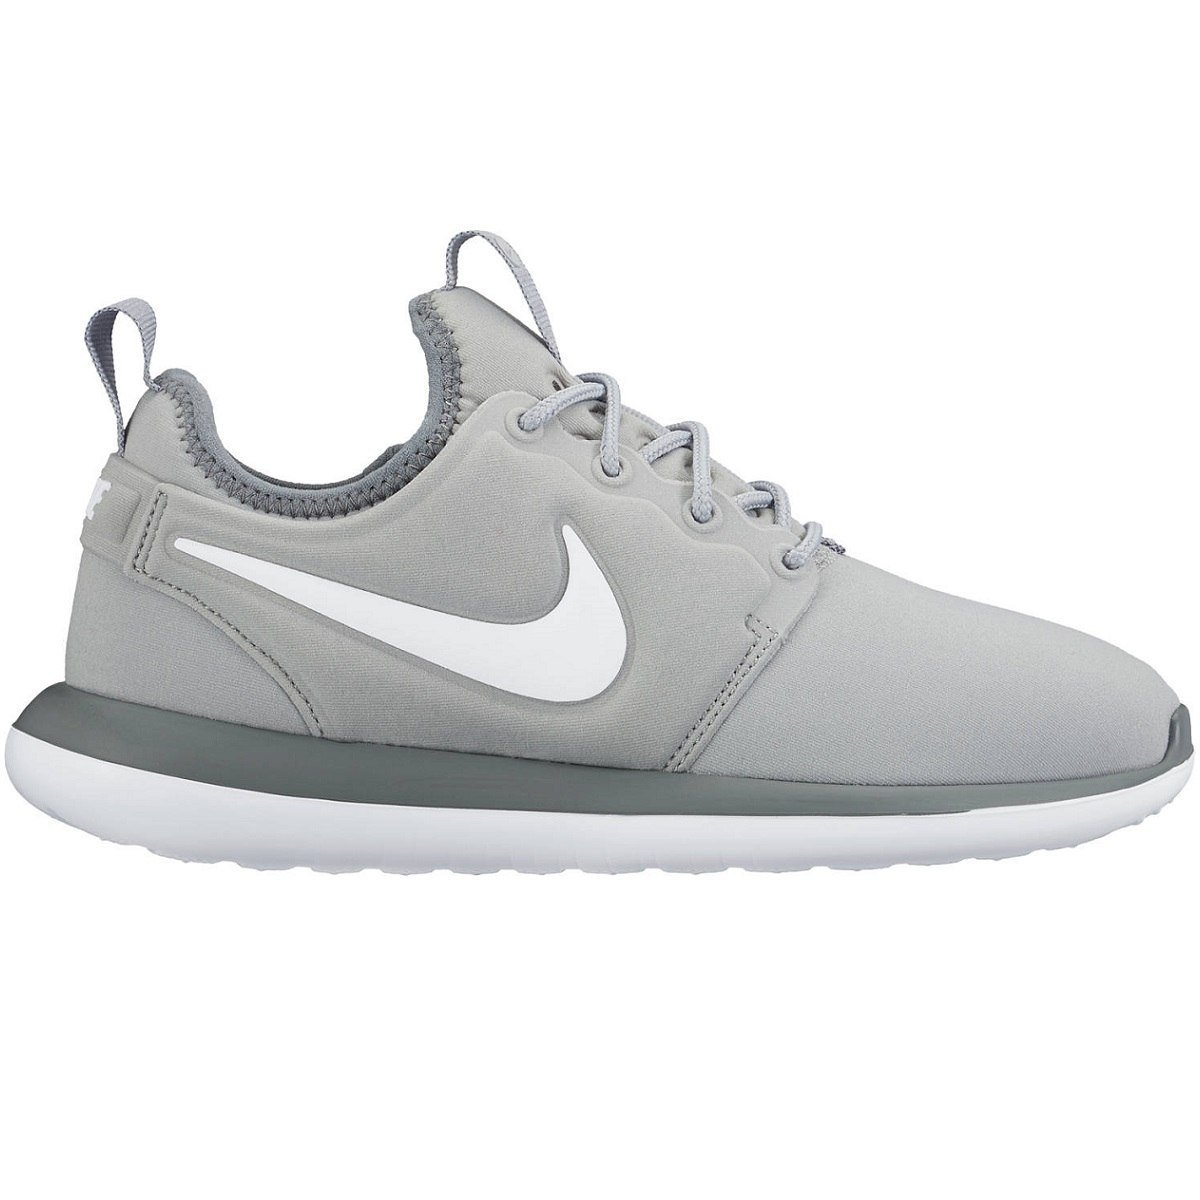 54acbf3a89579 Galleon - NIKE Roshe Two Big Kids  Shoes Cool Grey White-Wolf Grey  844653-004 (3.5 M US)